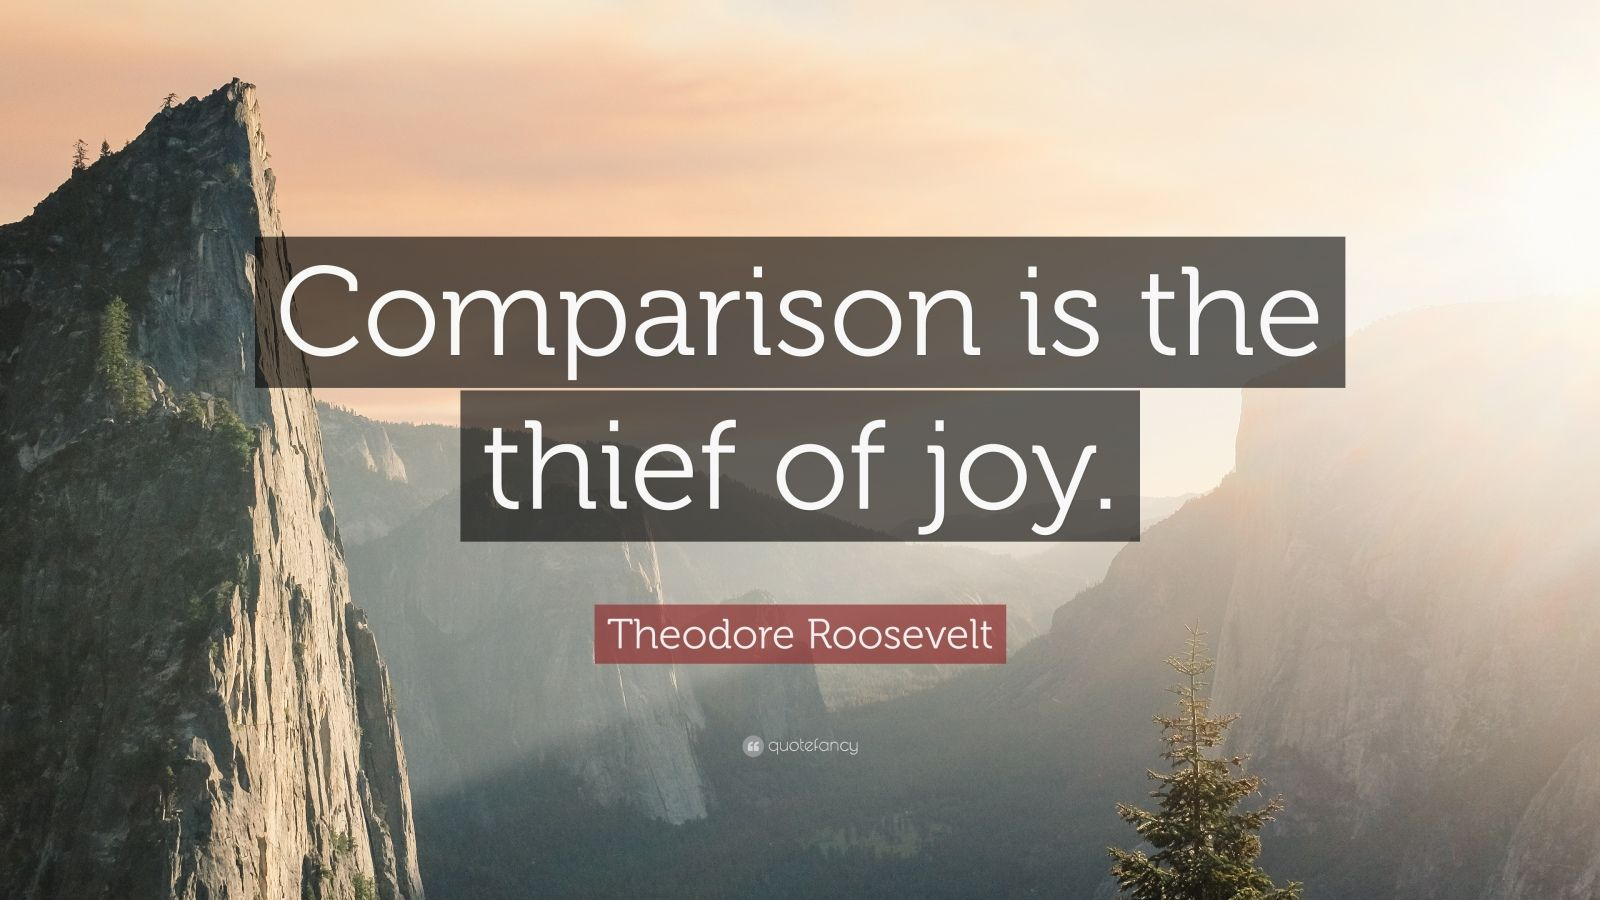 Road Quote Wallpaper Theodore Roosevelt Quote Comparison Is The Thief Of Joy